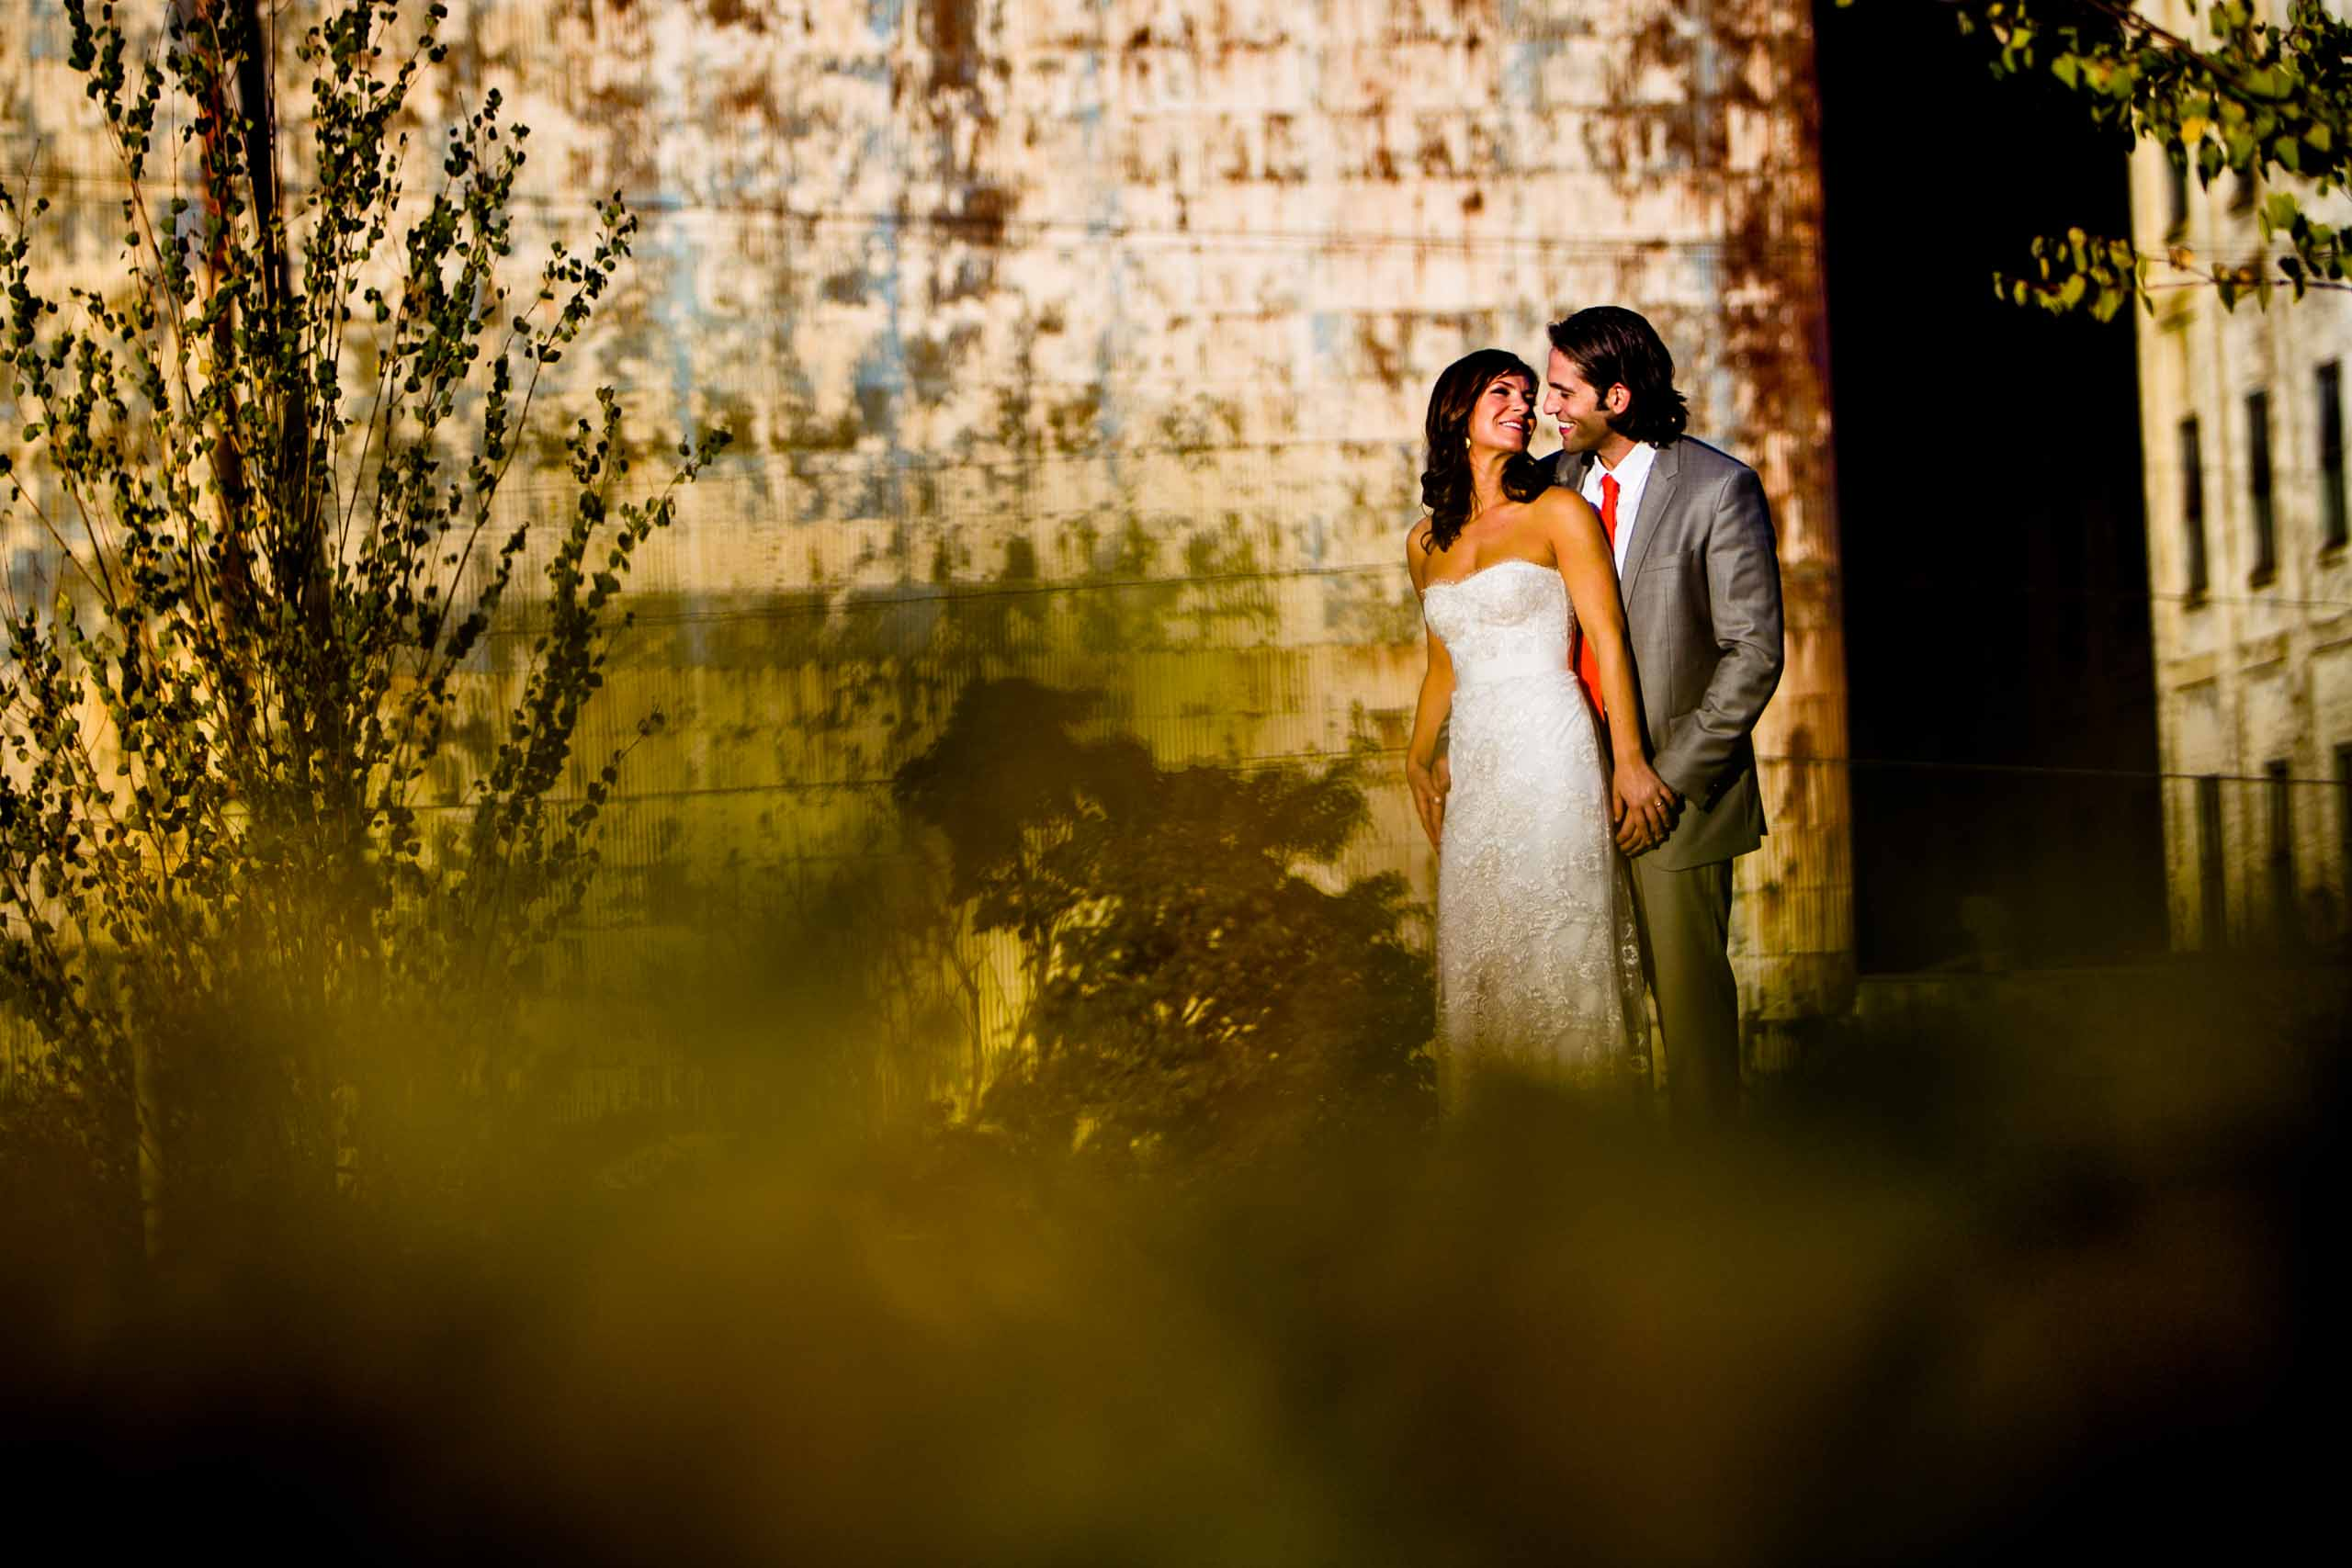 Bride and groom portrait at sunset with rustic Portand backdrops during their Castaway Portland wedding celebration